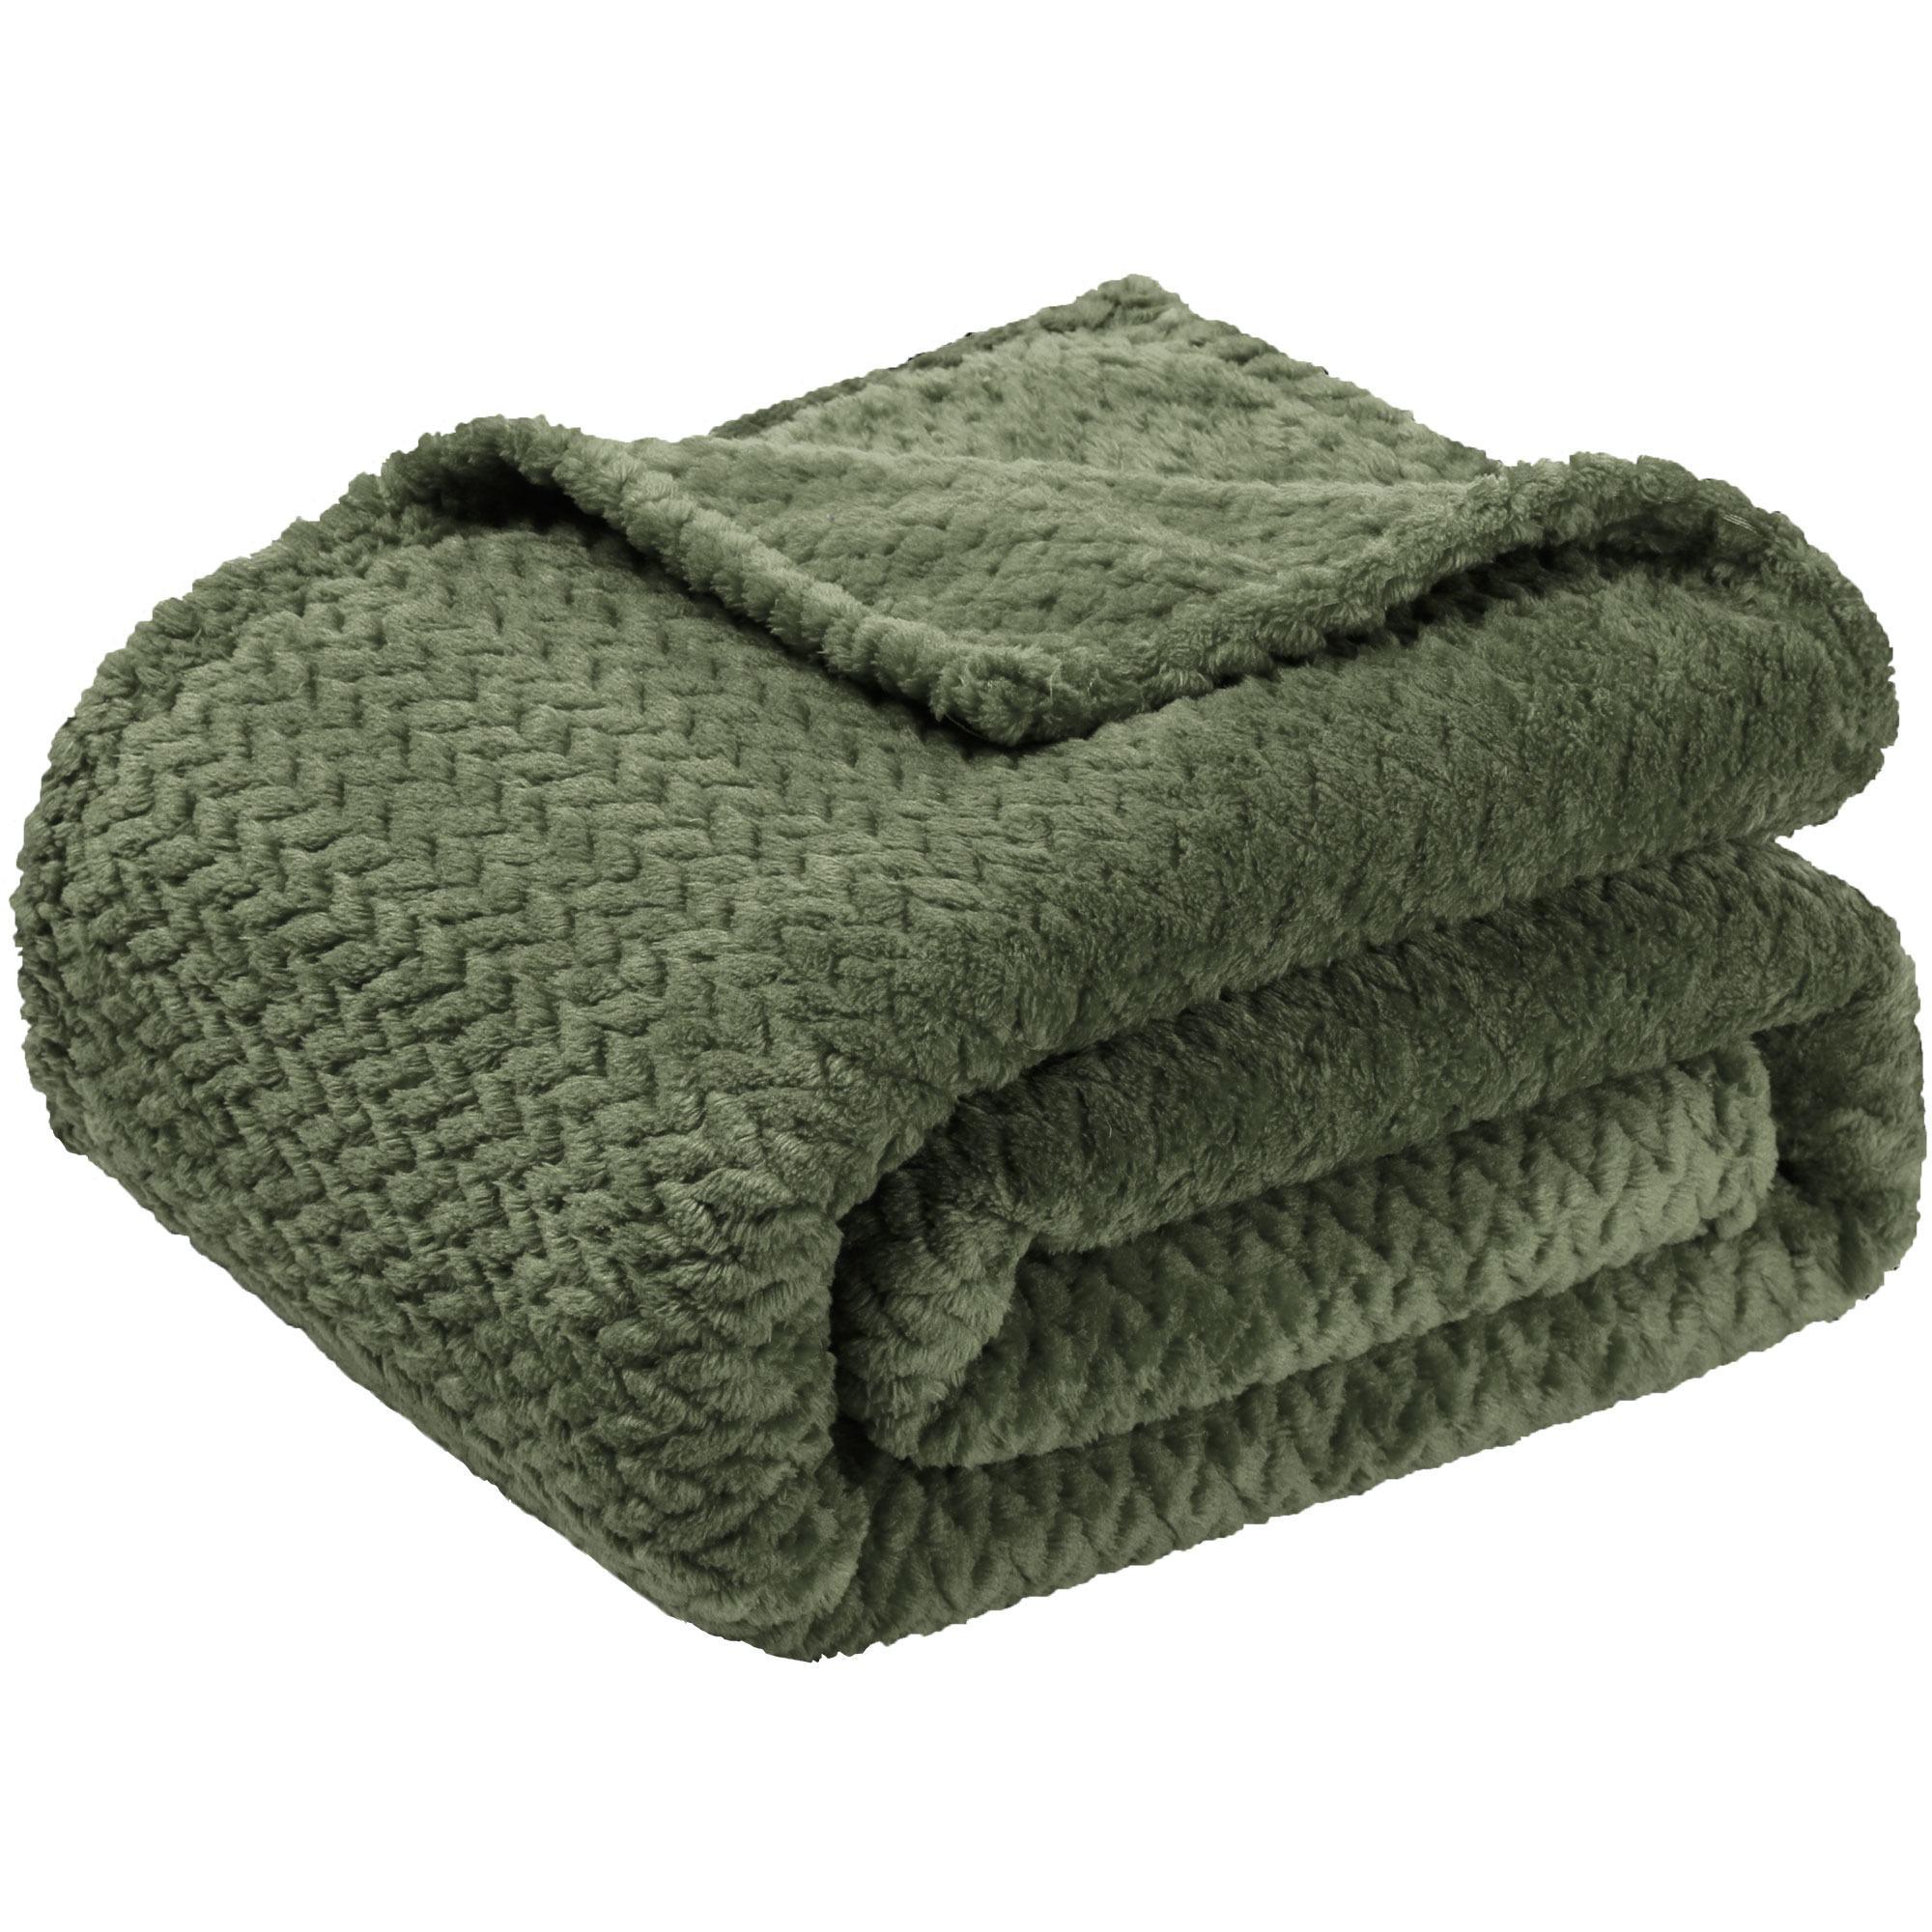 "New Luxury Leaves Throws Fleece Warm Large Sofa Blankets 50"" x 59"" Army Green"